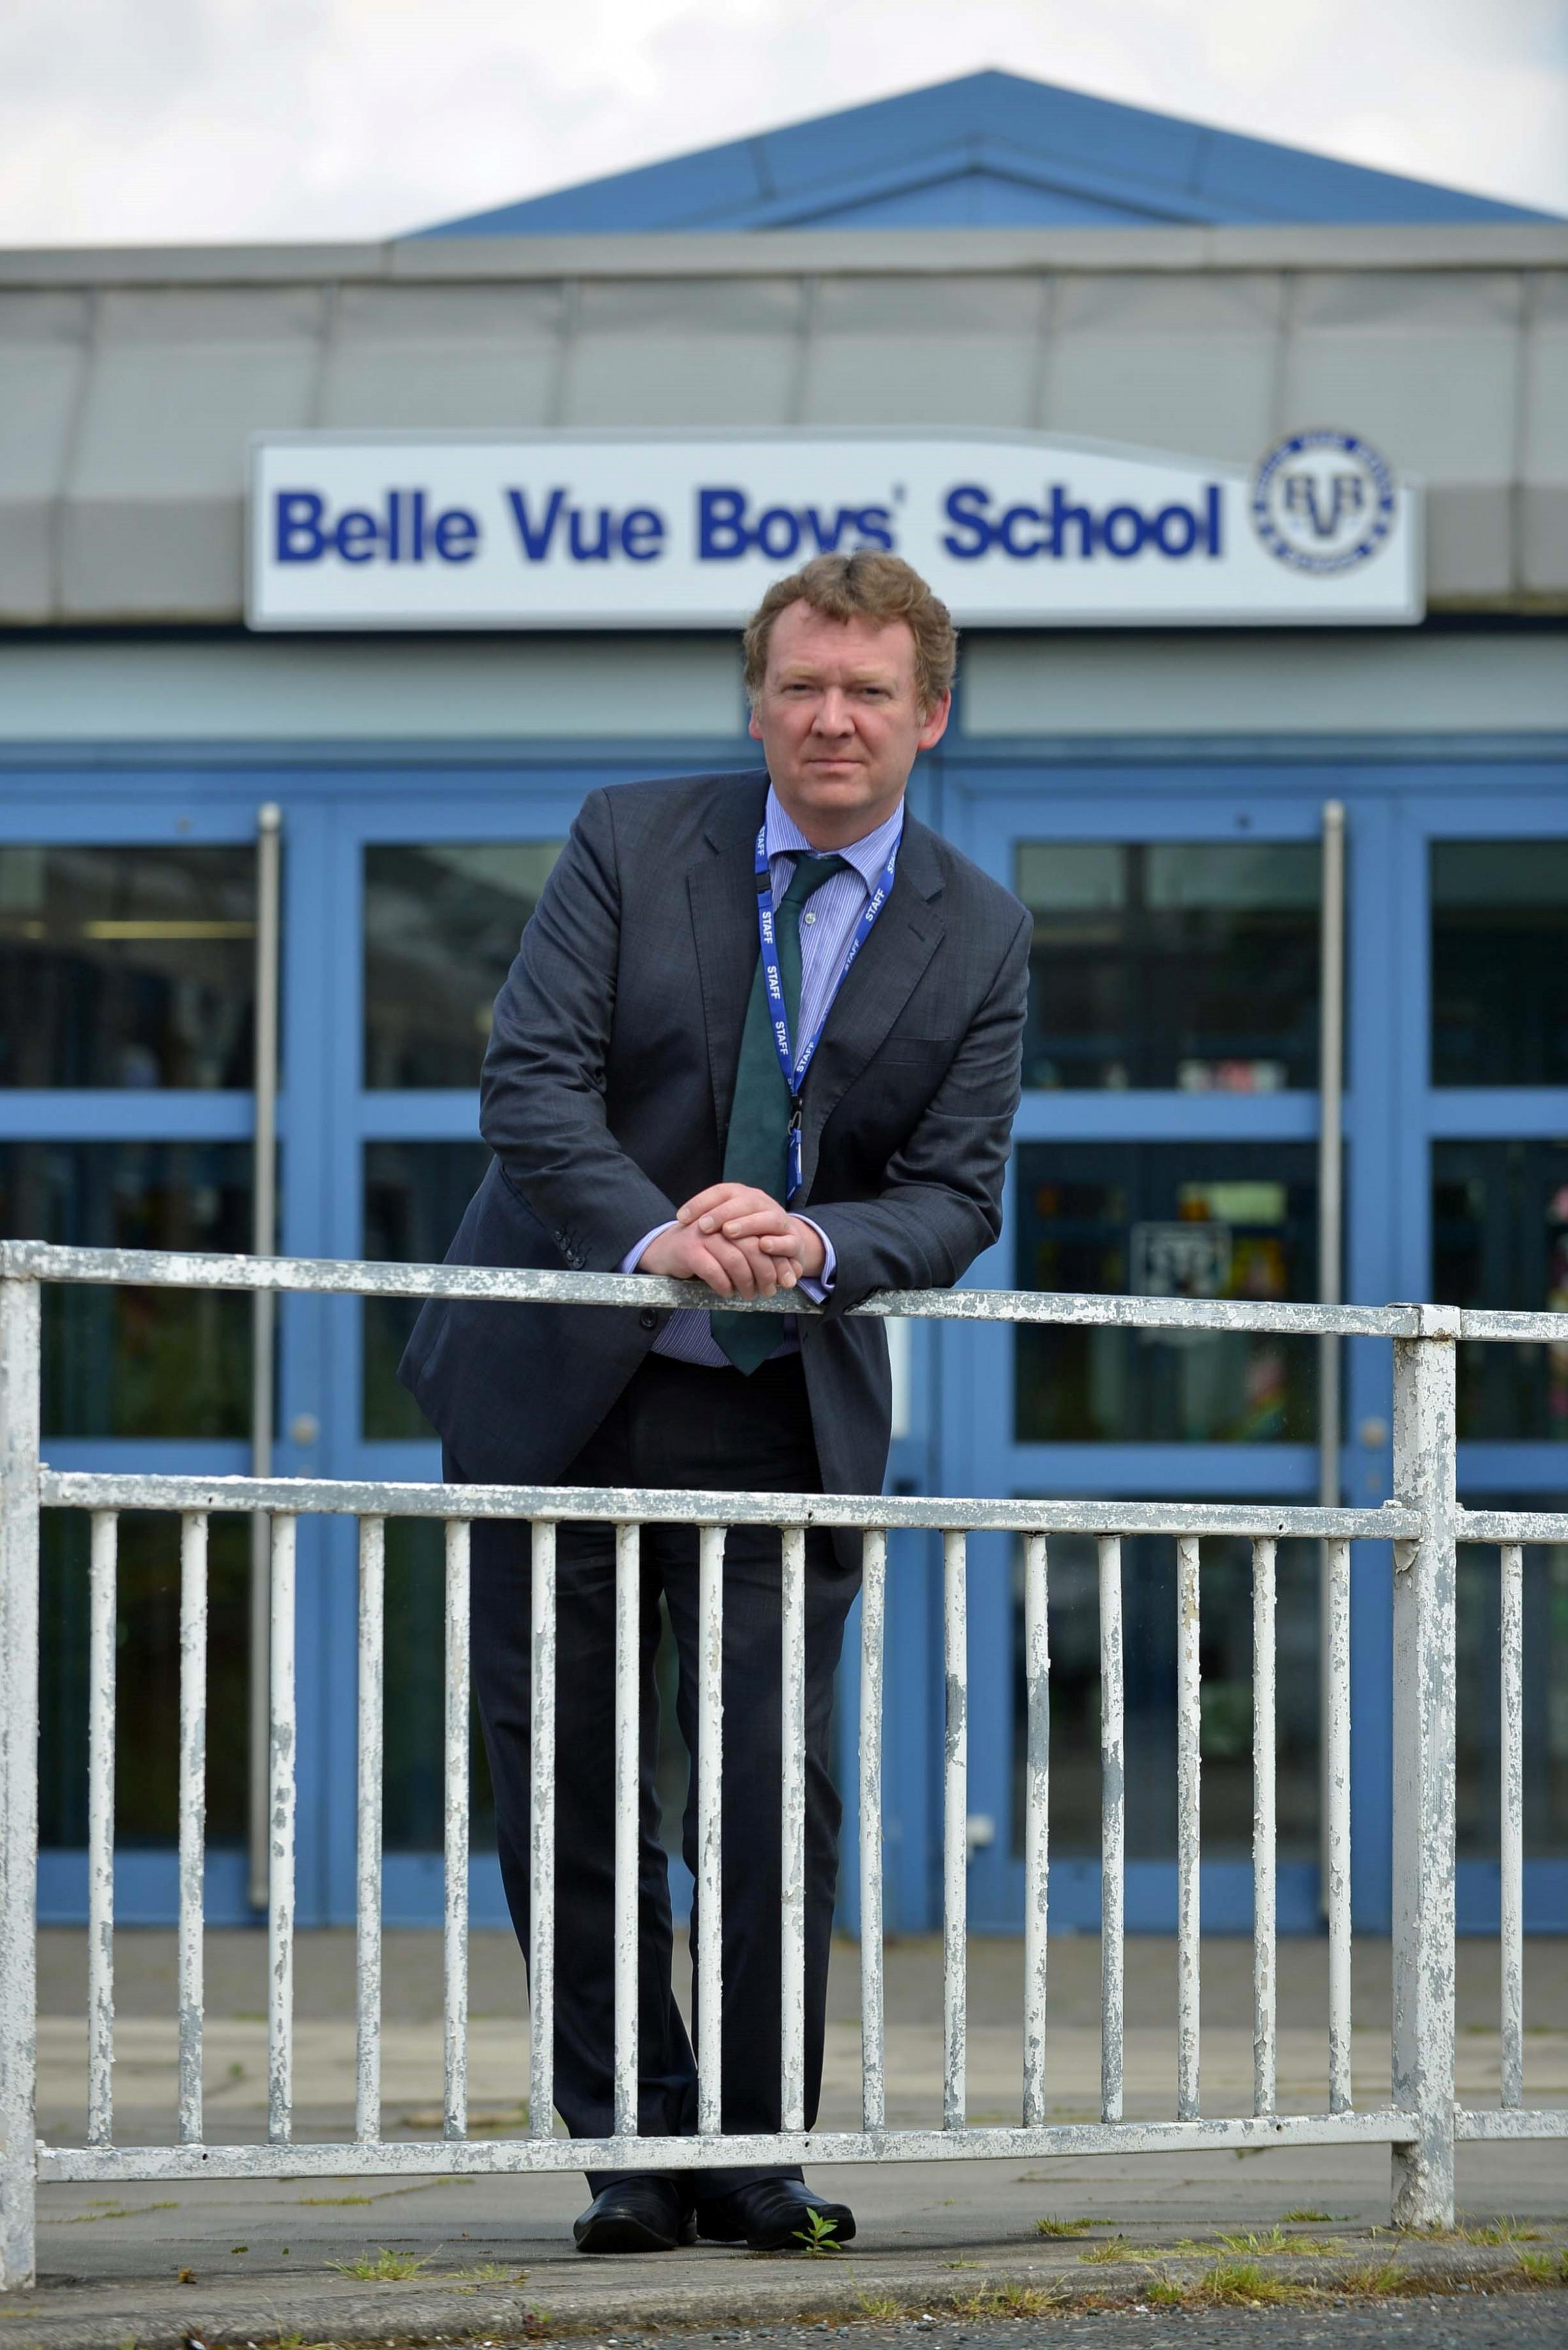 Belle Vue Boys School in special measures